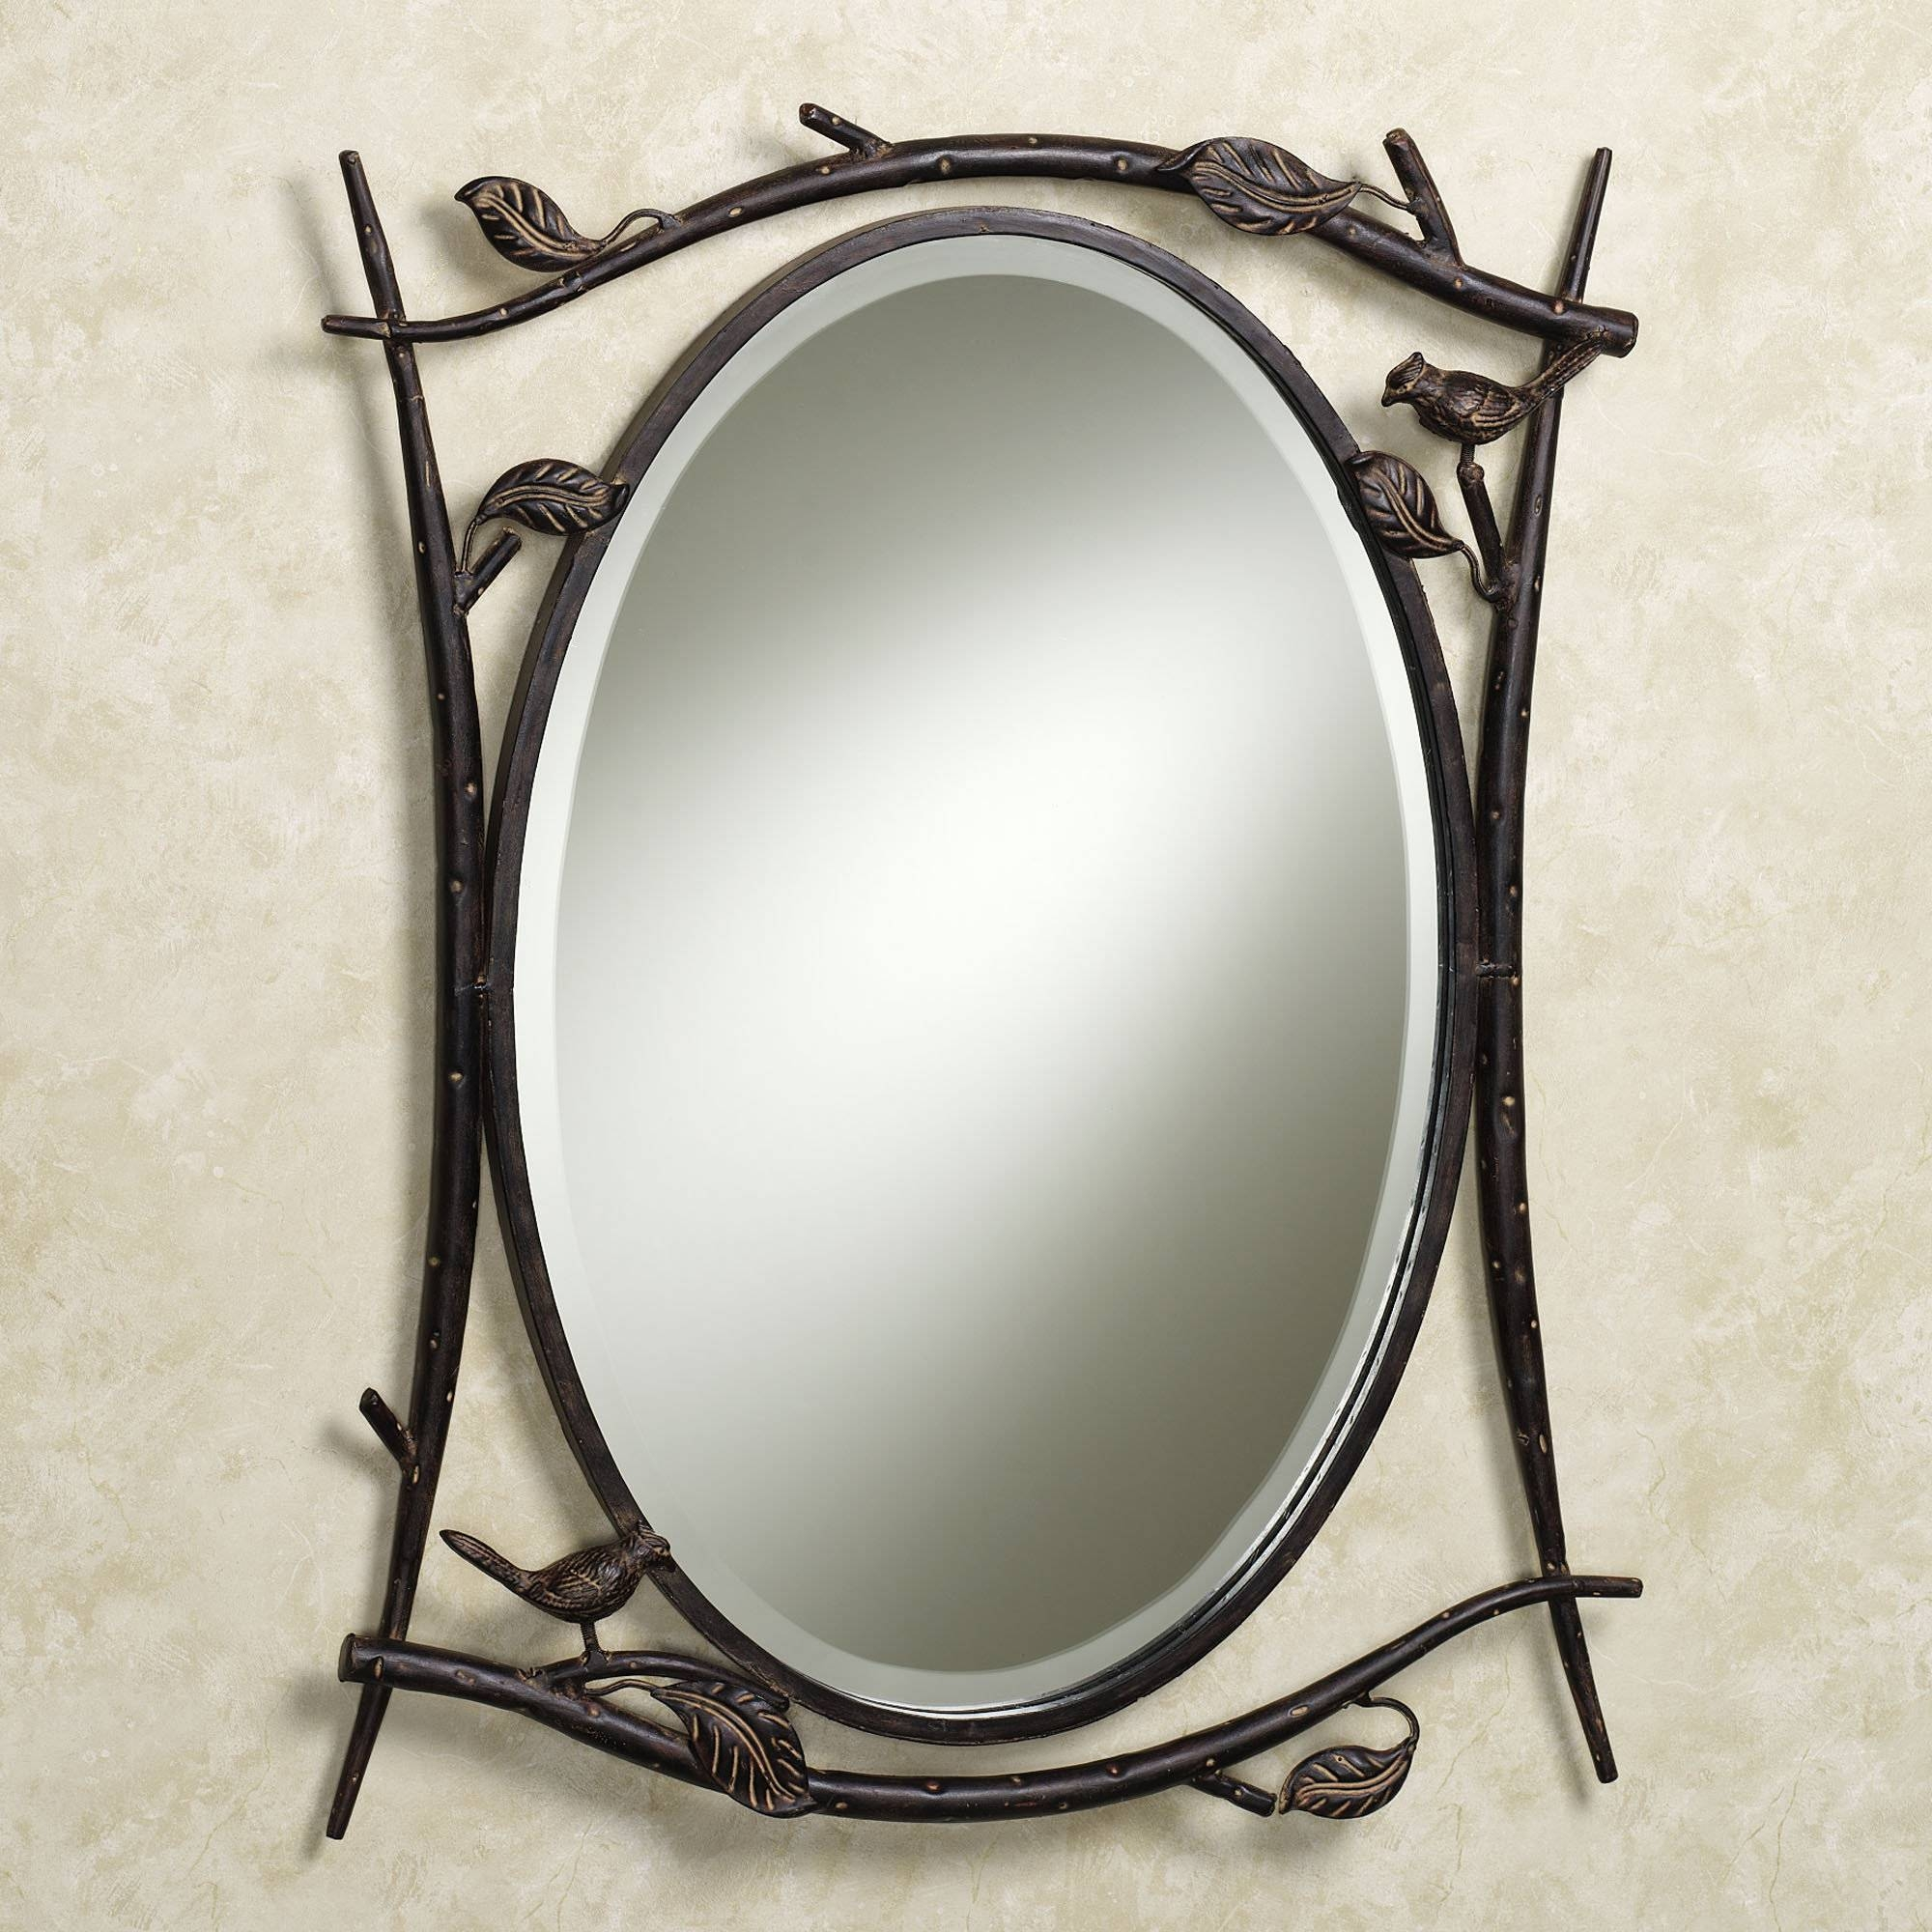 Antique Rectangular Wall Mirrors With Carving Iron Frames As throughout Iron Framed Mirrors (Image 1 of 25)